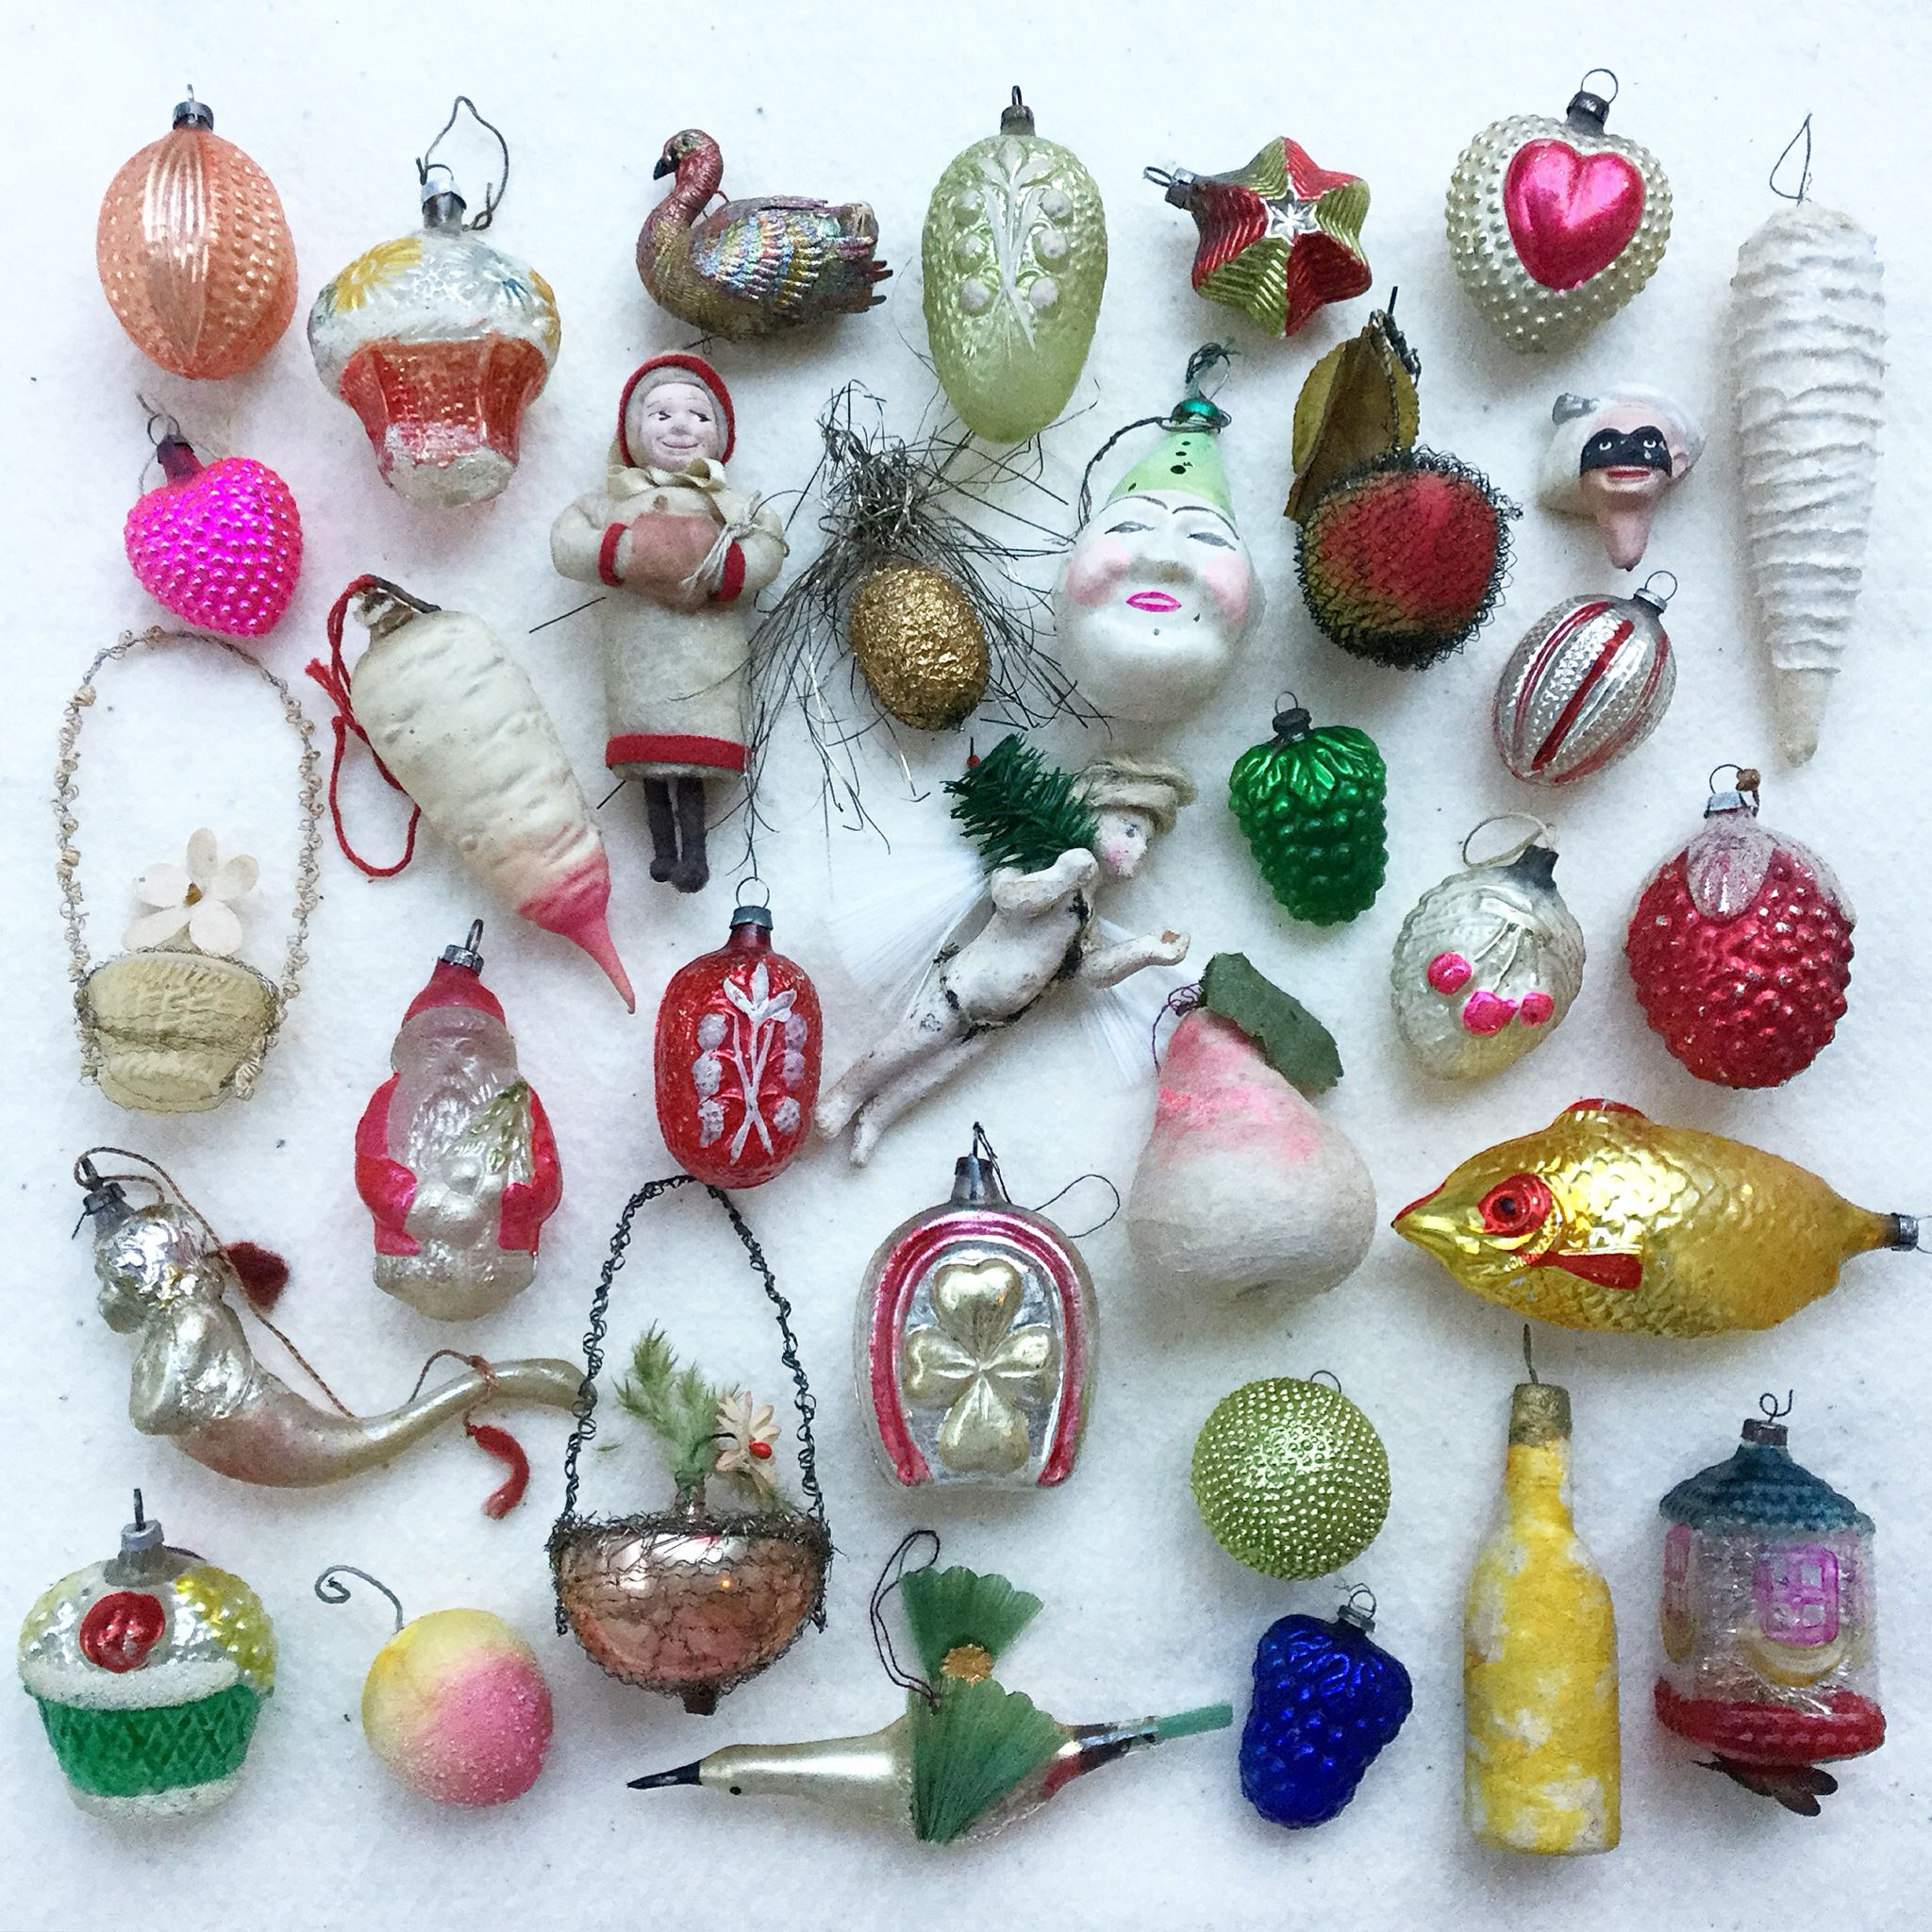 Antique Christmas Ornaments >> My Collection Of Antique Xmas Ornaments For My German Feather Tree